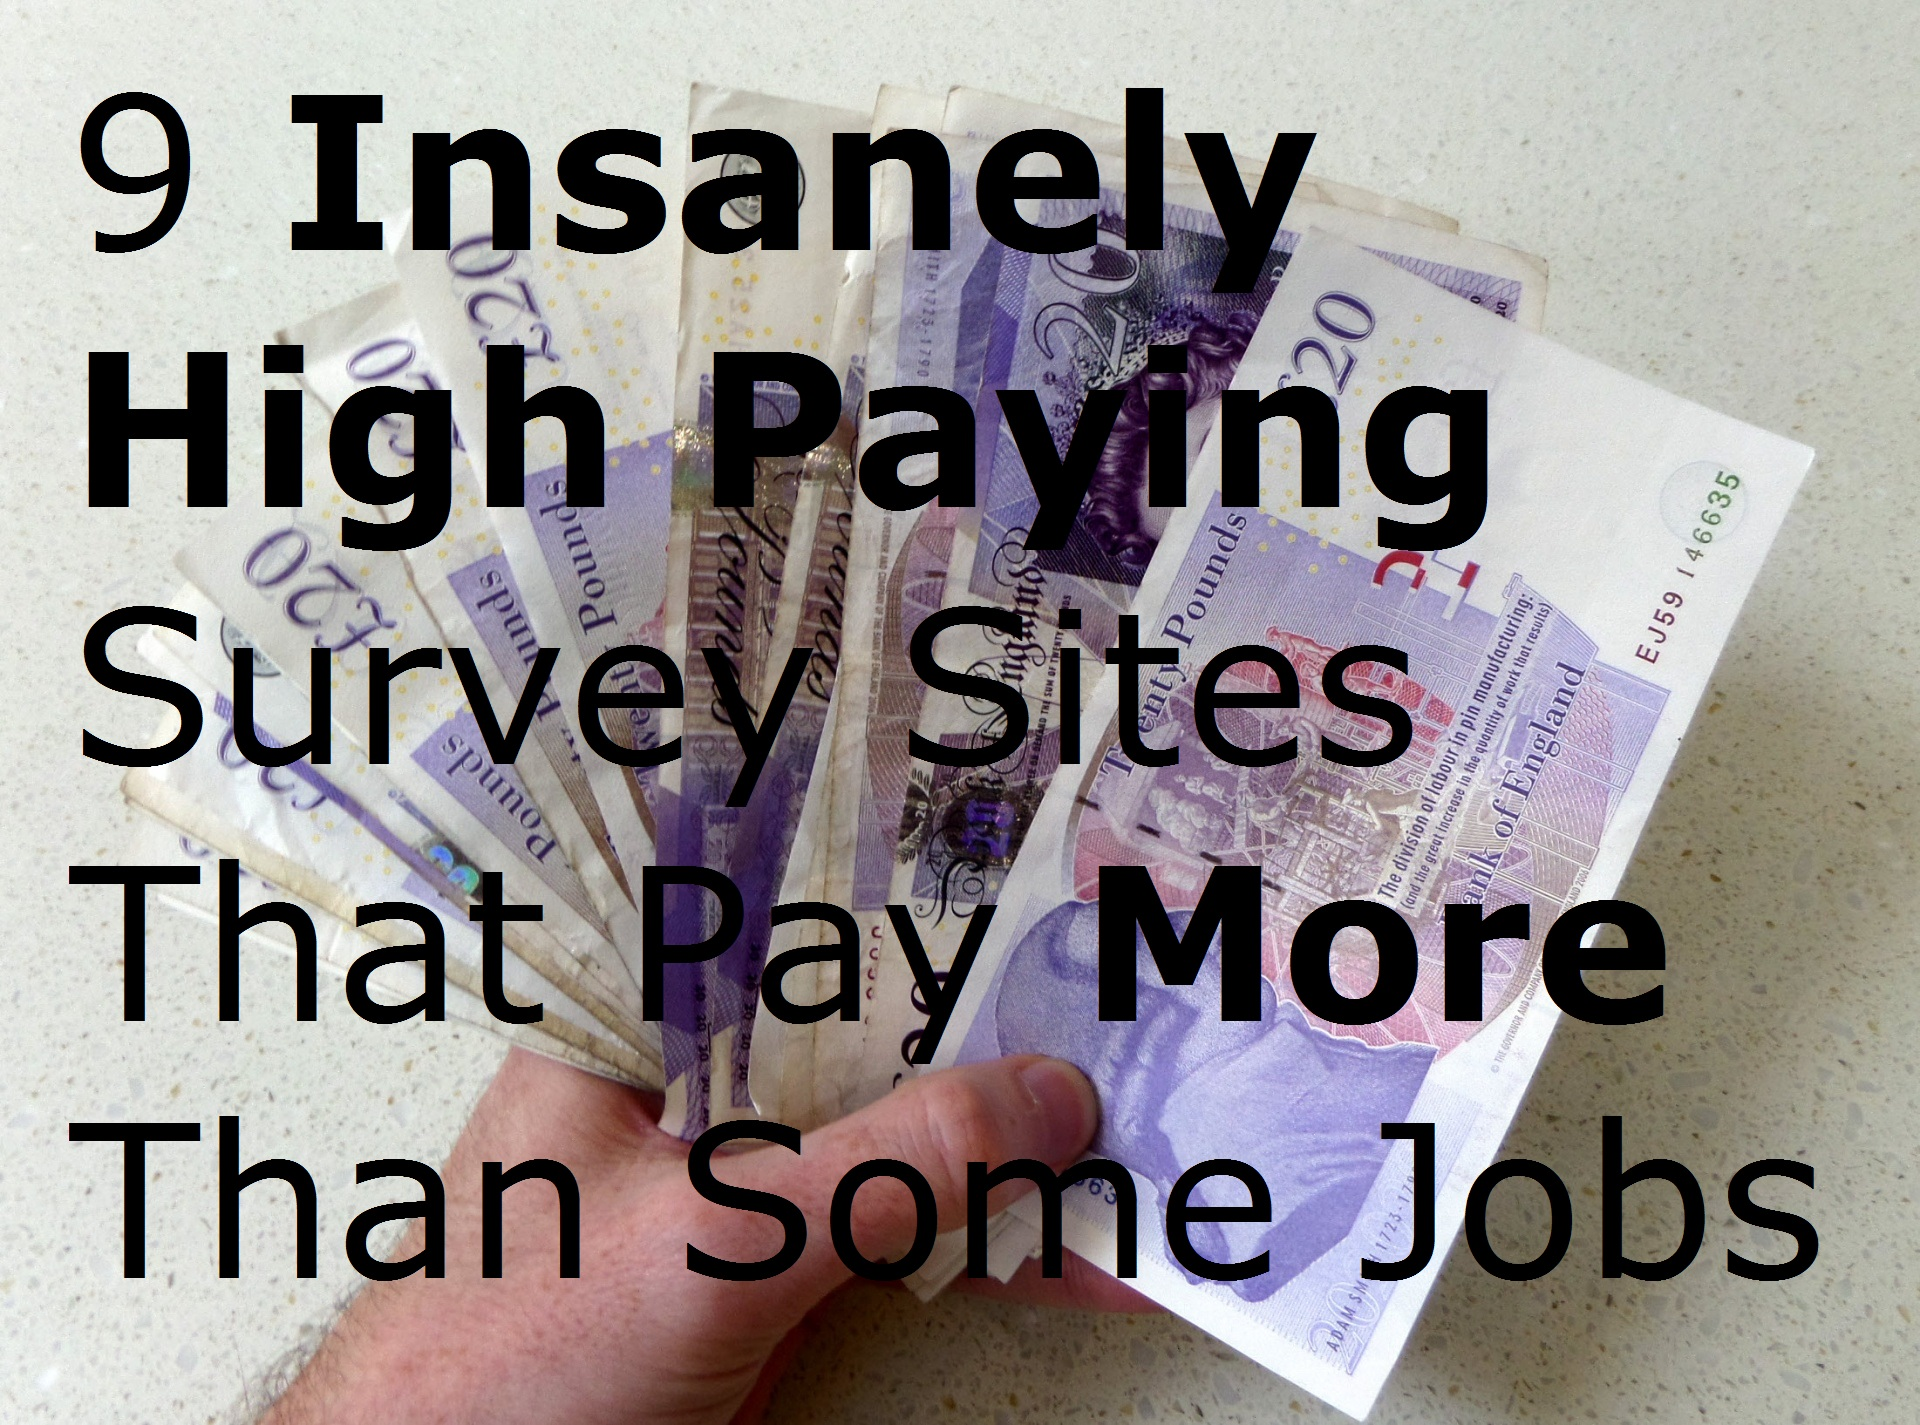 9 Insanely High Paying Survey Sites That Pay More Than Some Jobs